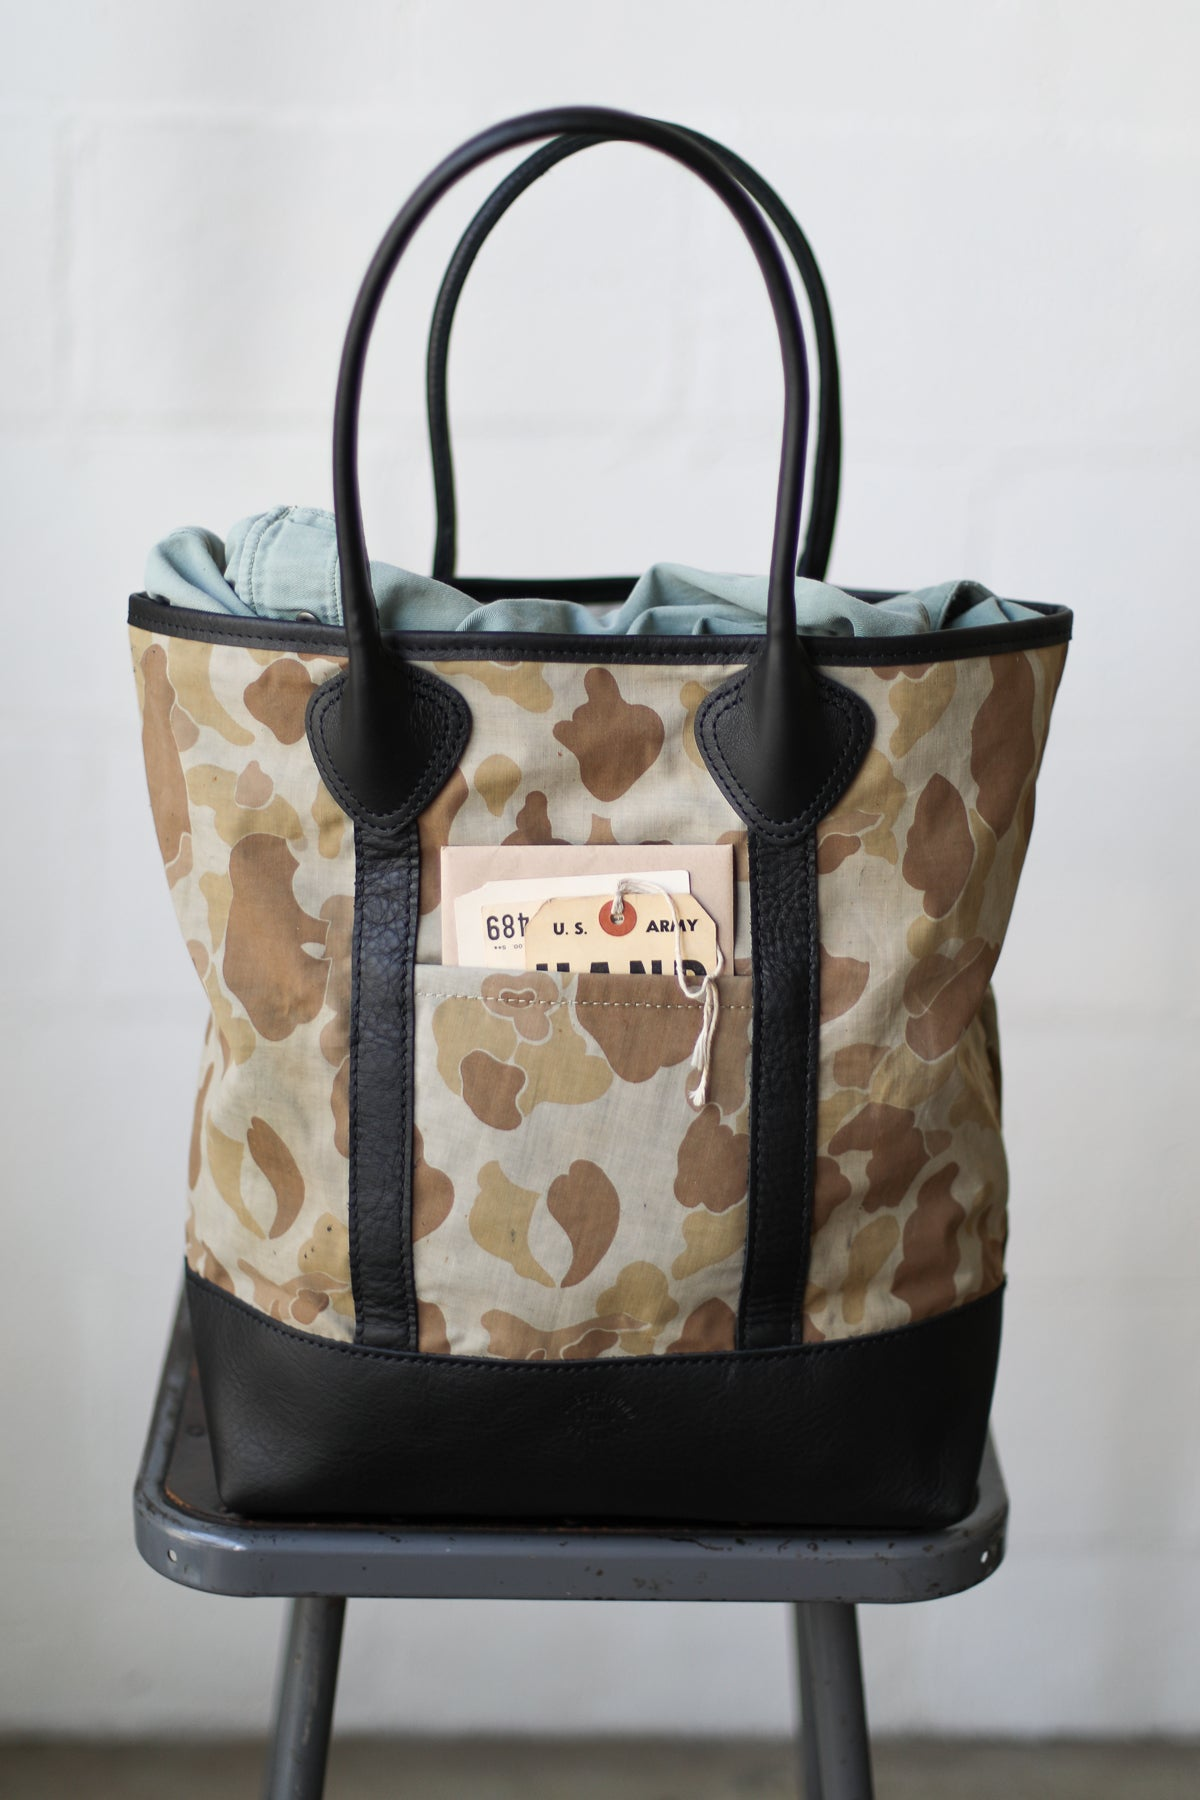 WWII era Salvaged Camo Tote Bag